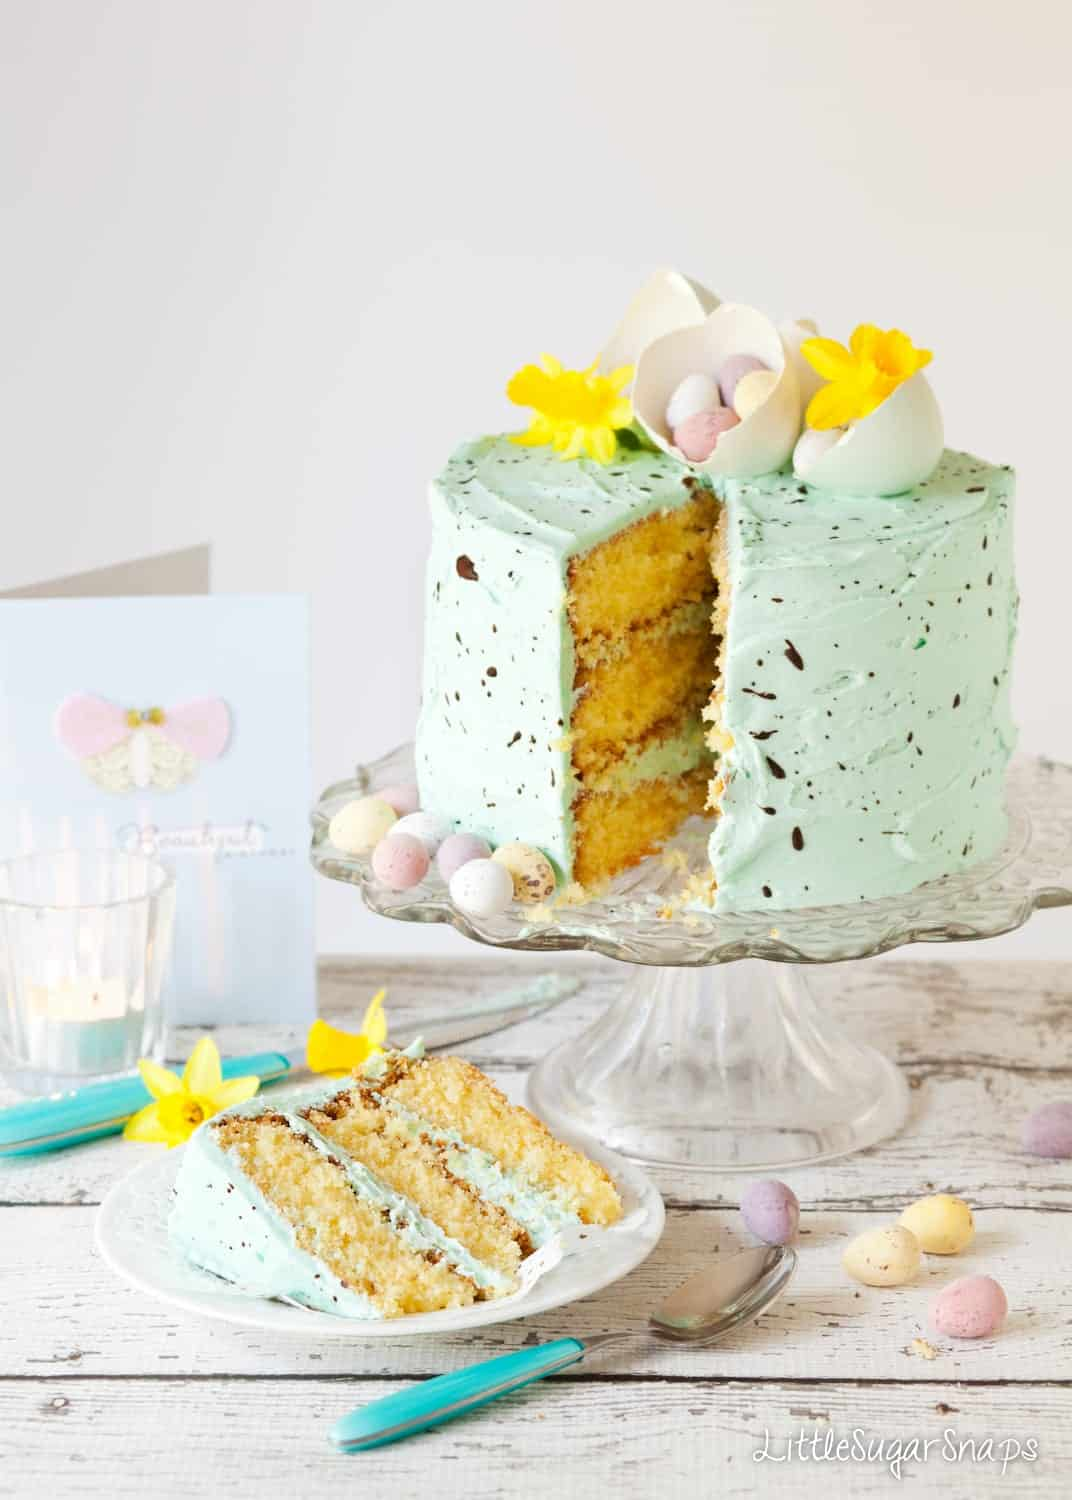 Speckled Egg Cake cut into with a slice on a plate.